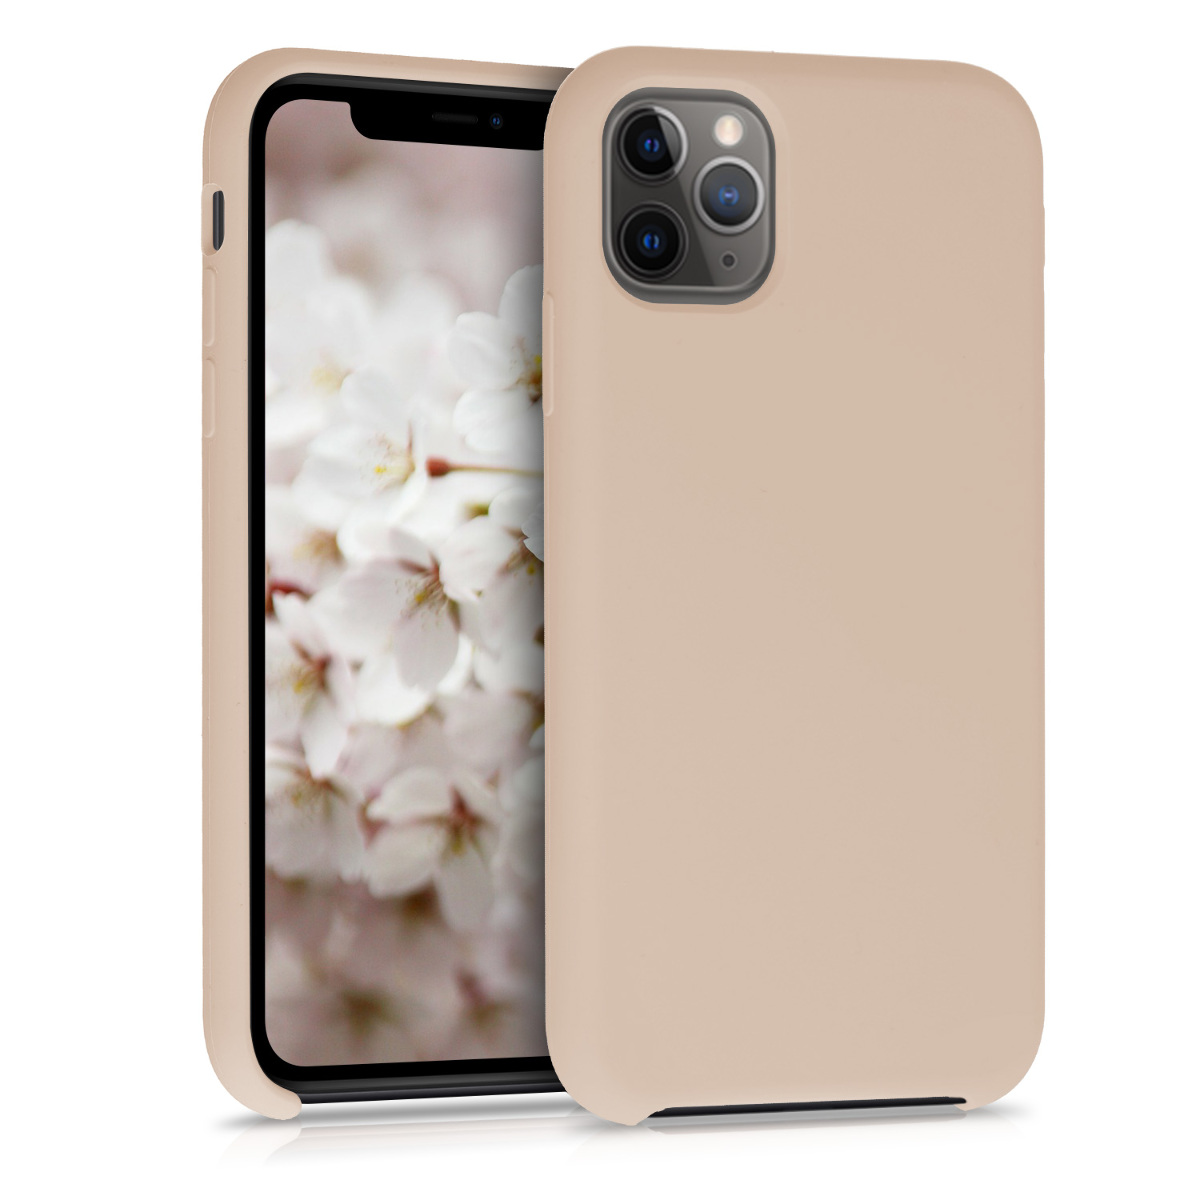 KW Θήκη Σιλικόνης Apple iPhone 11 Pro Max - Soft Flexible Rubber- Mother Of Pearl (49725.154)